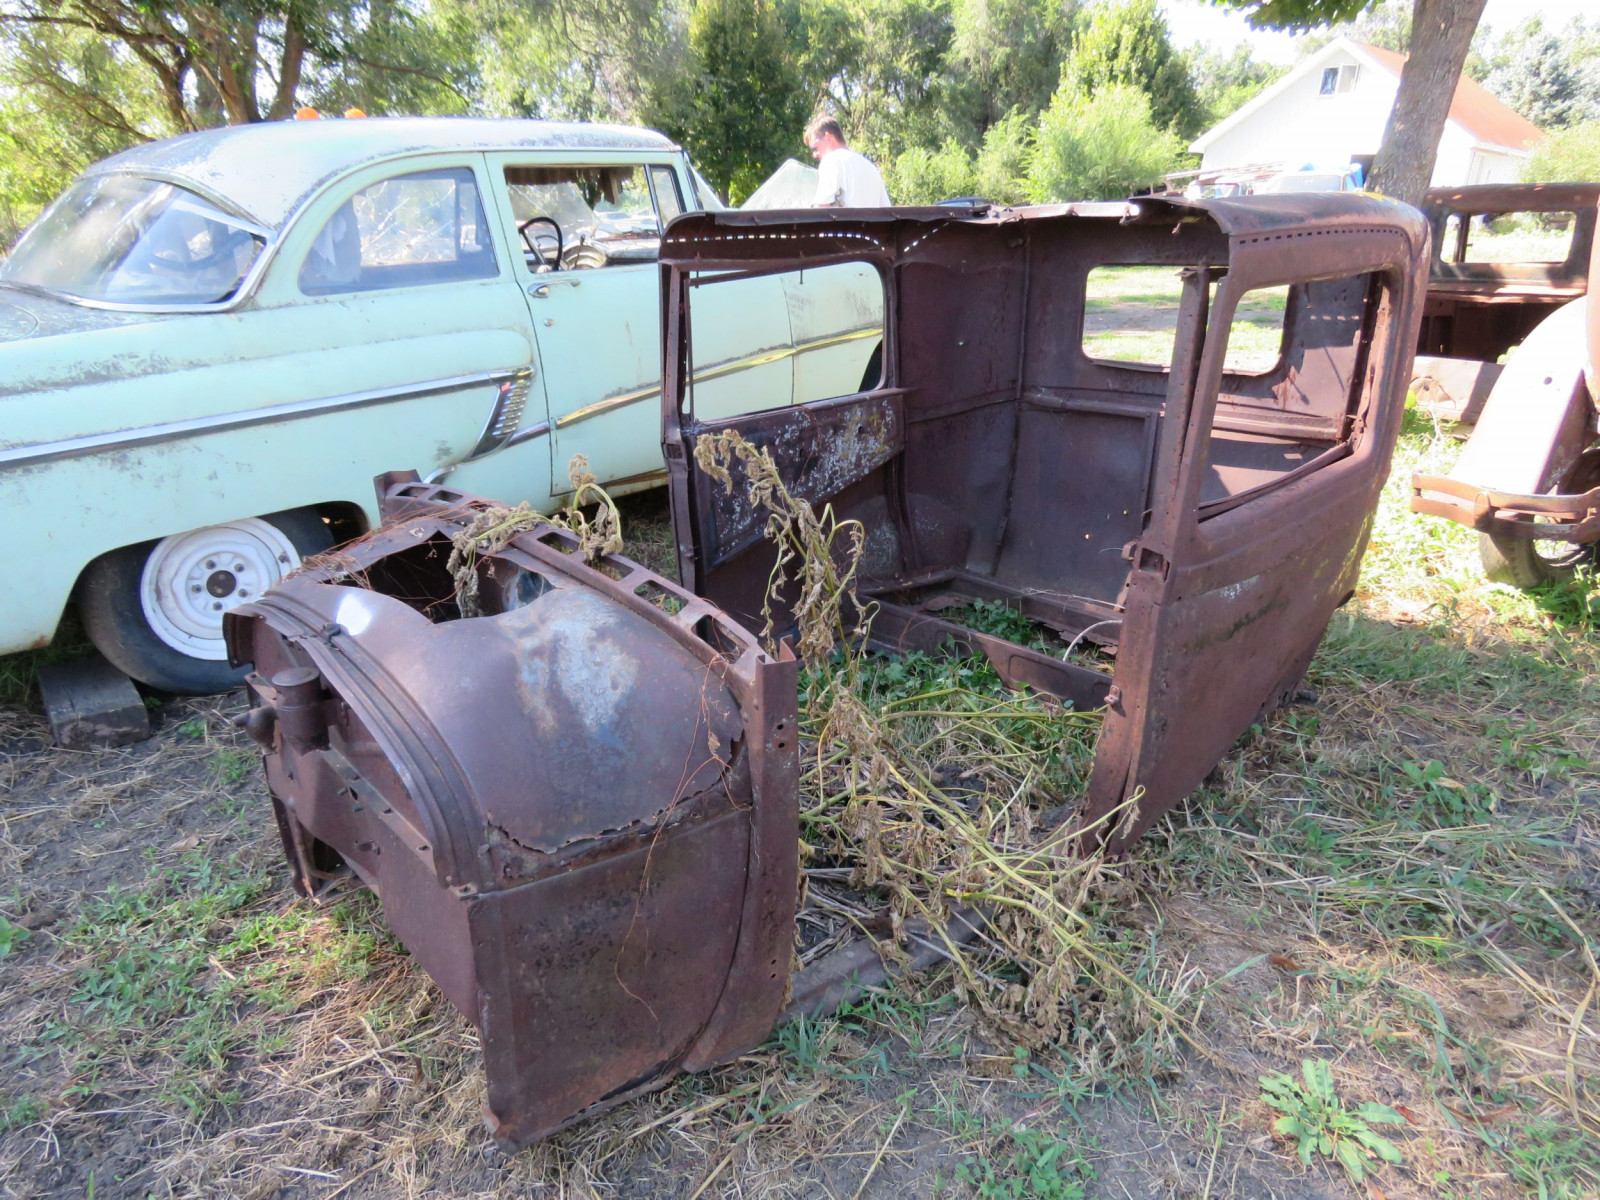 Ford Model A Body for Rod or Restore - Image 1